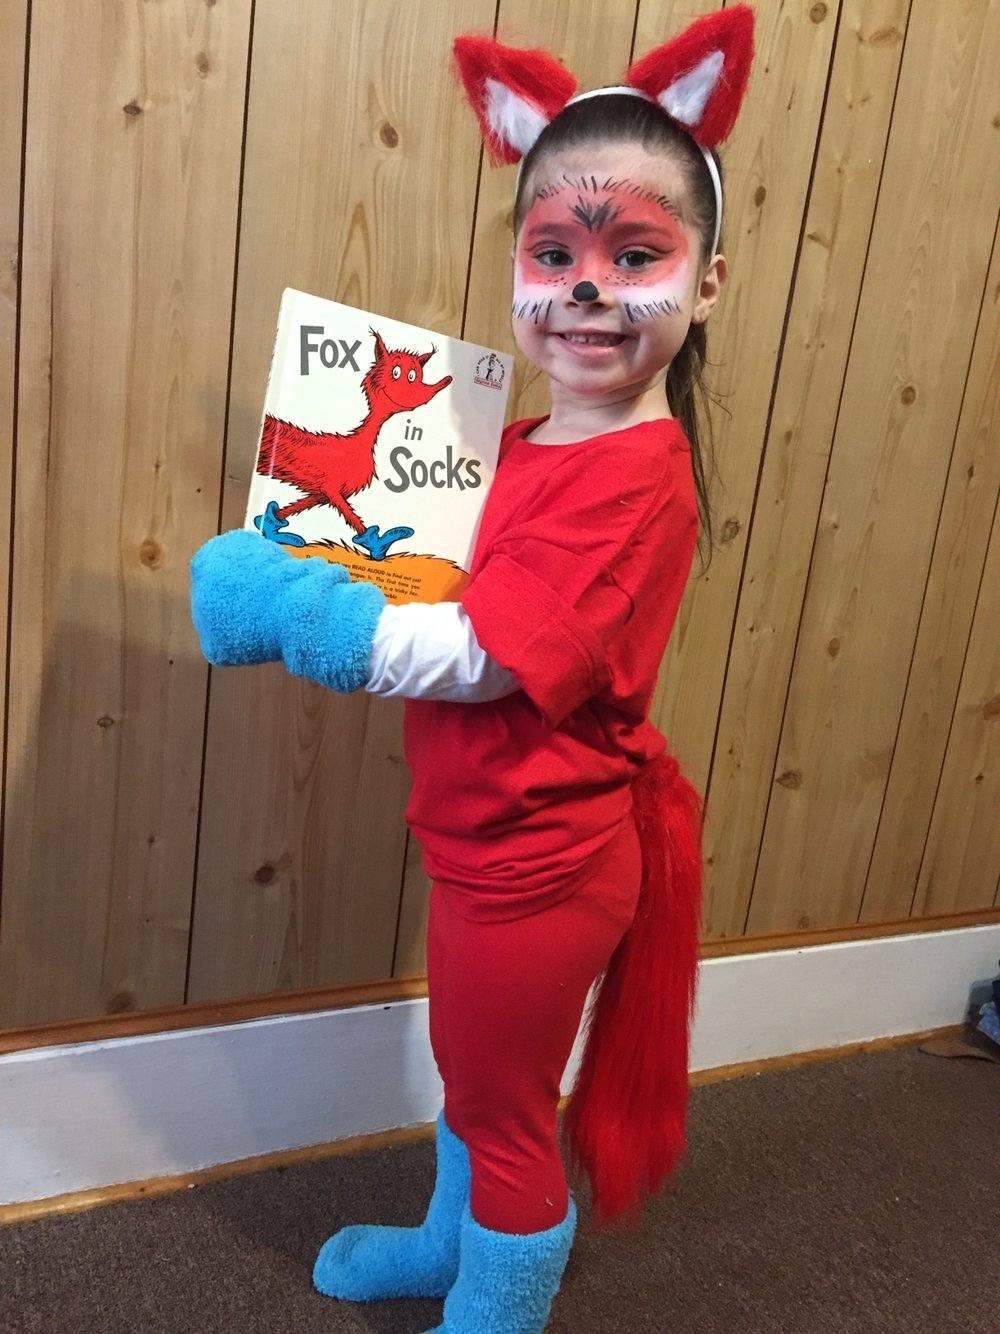 10 Stylish Dr Seuss Costume Ideas Homemade character day at school fox in socks diy costume my personal 4 2020